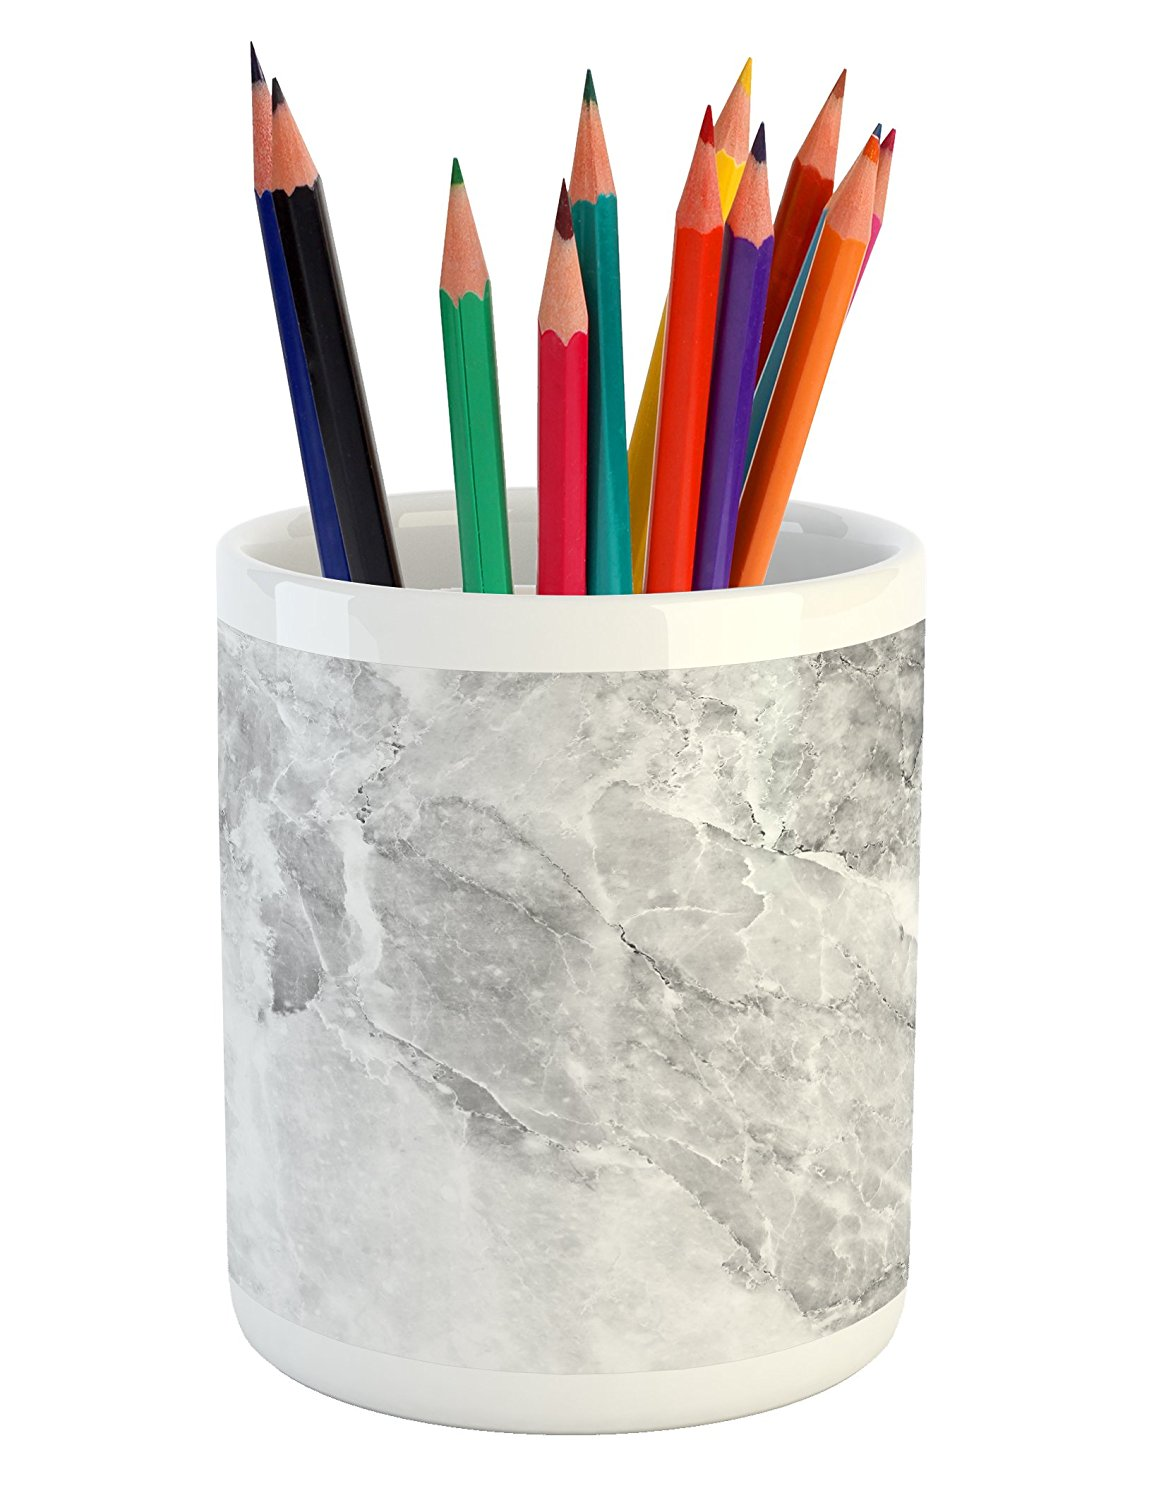 Marble Pencil Pen Holder by Lunarable, Retro Marble Pattern with Blurry Color Contrasts Formless and Abstract Wavy Display, Printed Ceramic Pencil Pen Holder for Desk Office Accessory, Grey White